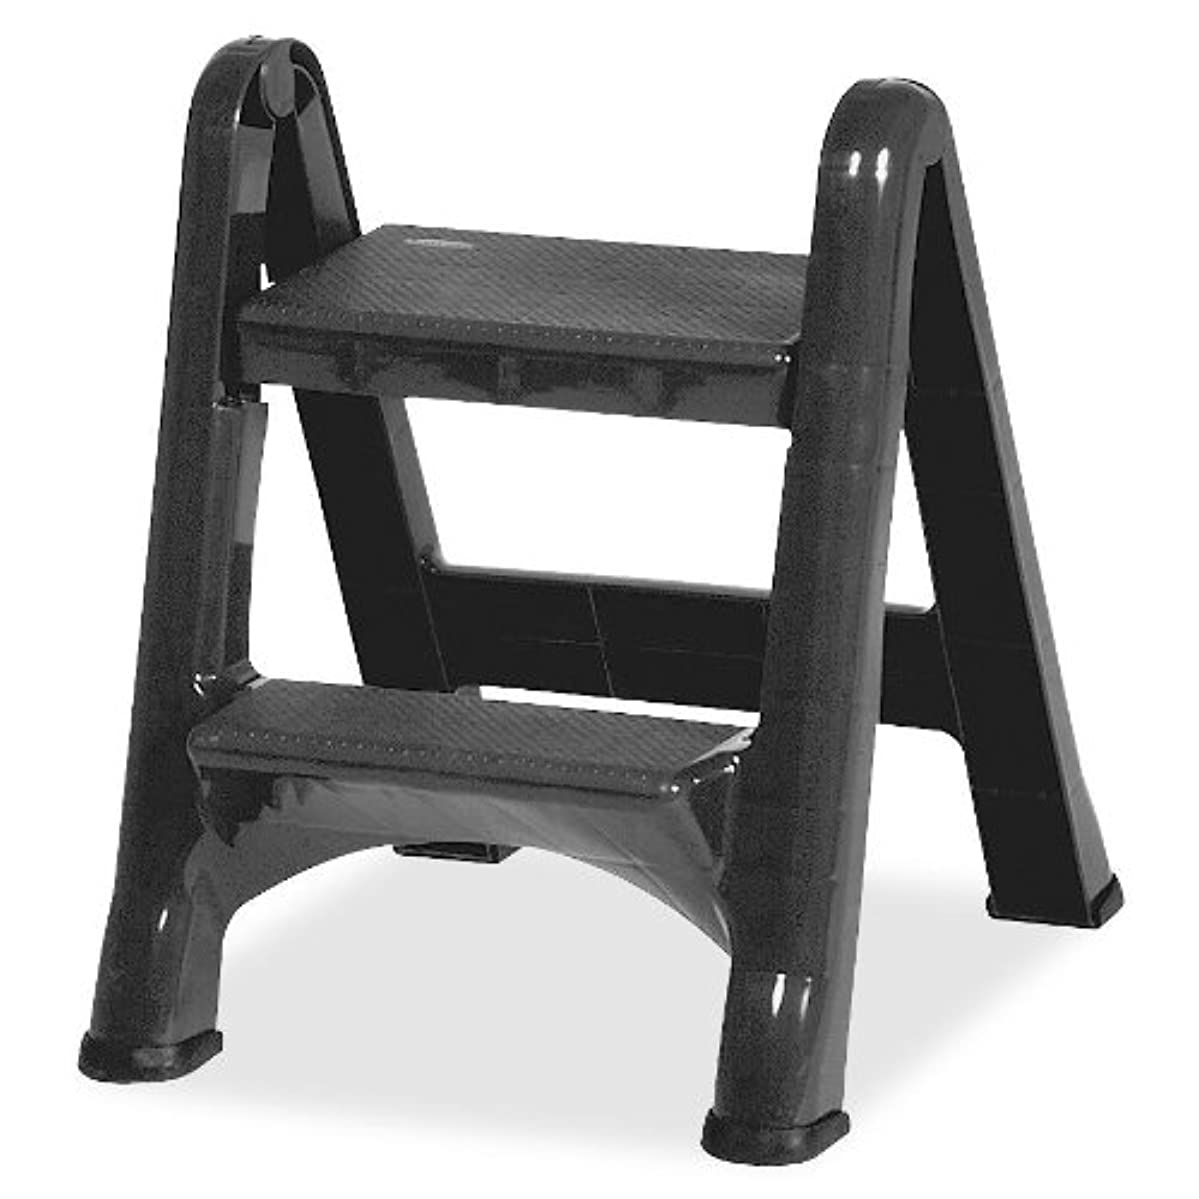 RCPFG420903CYLD - Rubbermaid E-Z Foldable Two-Step Stool